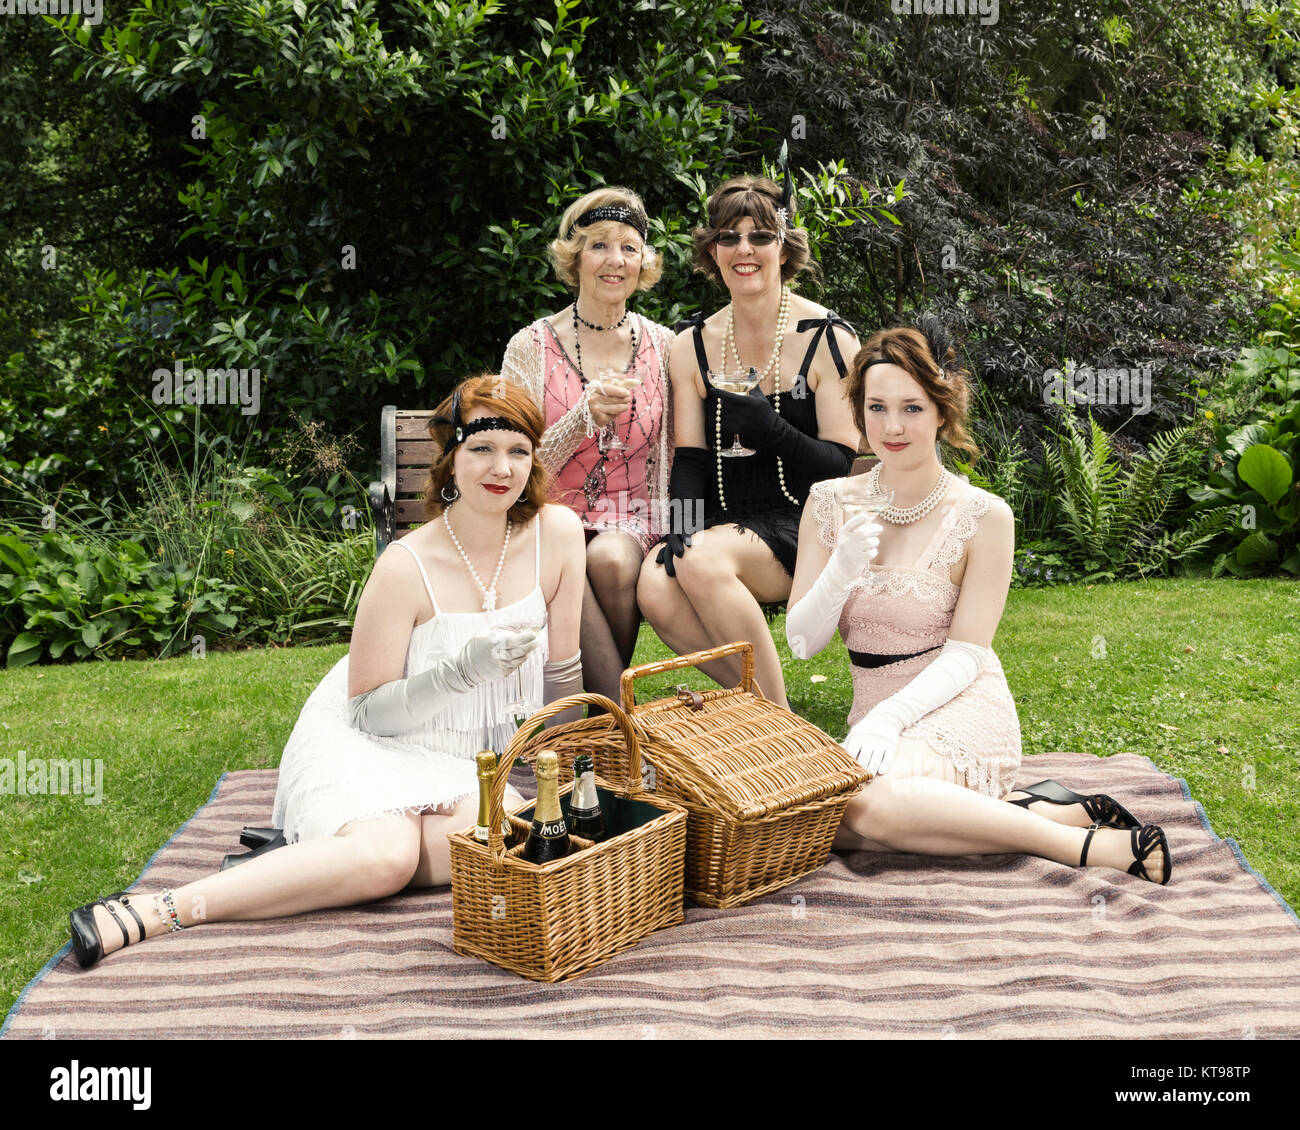 Thirties style garden picnic with period clothing - Stock Image